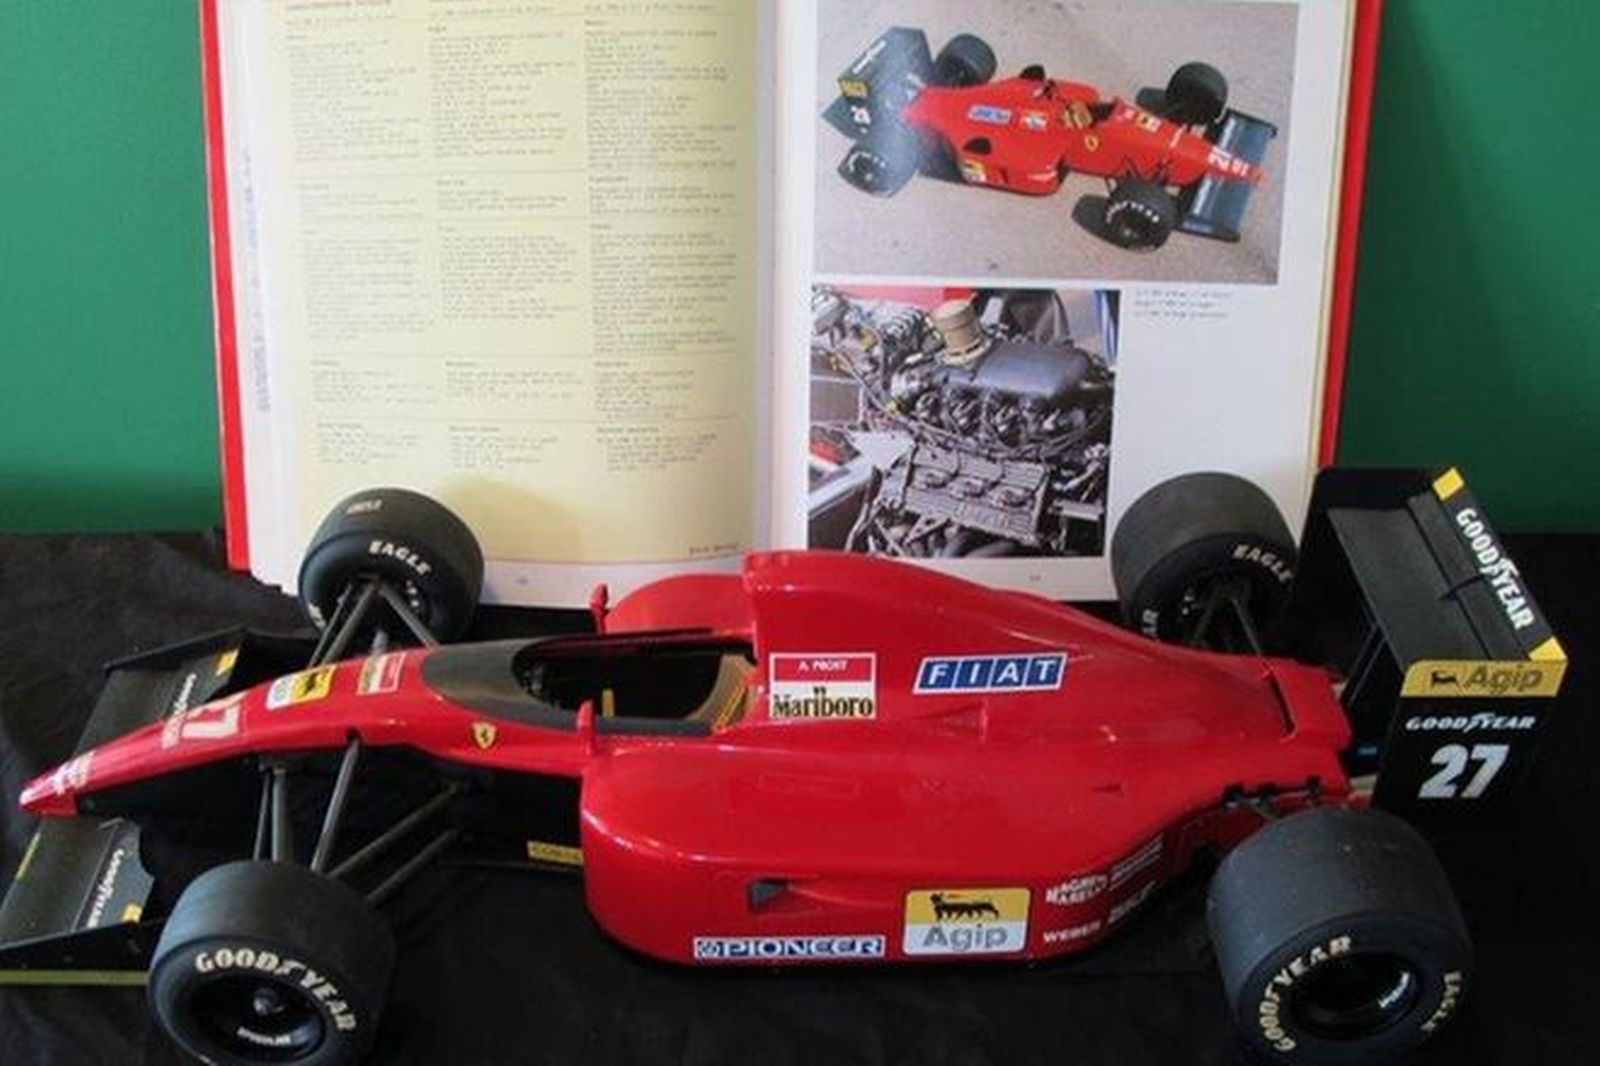 Model Car & Books - c1988 Ferrari 643 F1 (1/8 scale 60cm) & 5 Ferrari Books